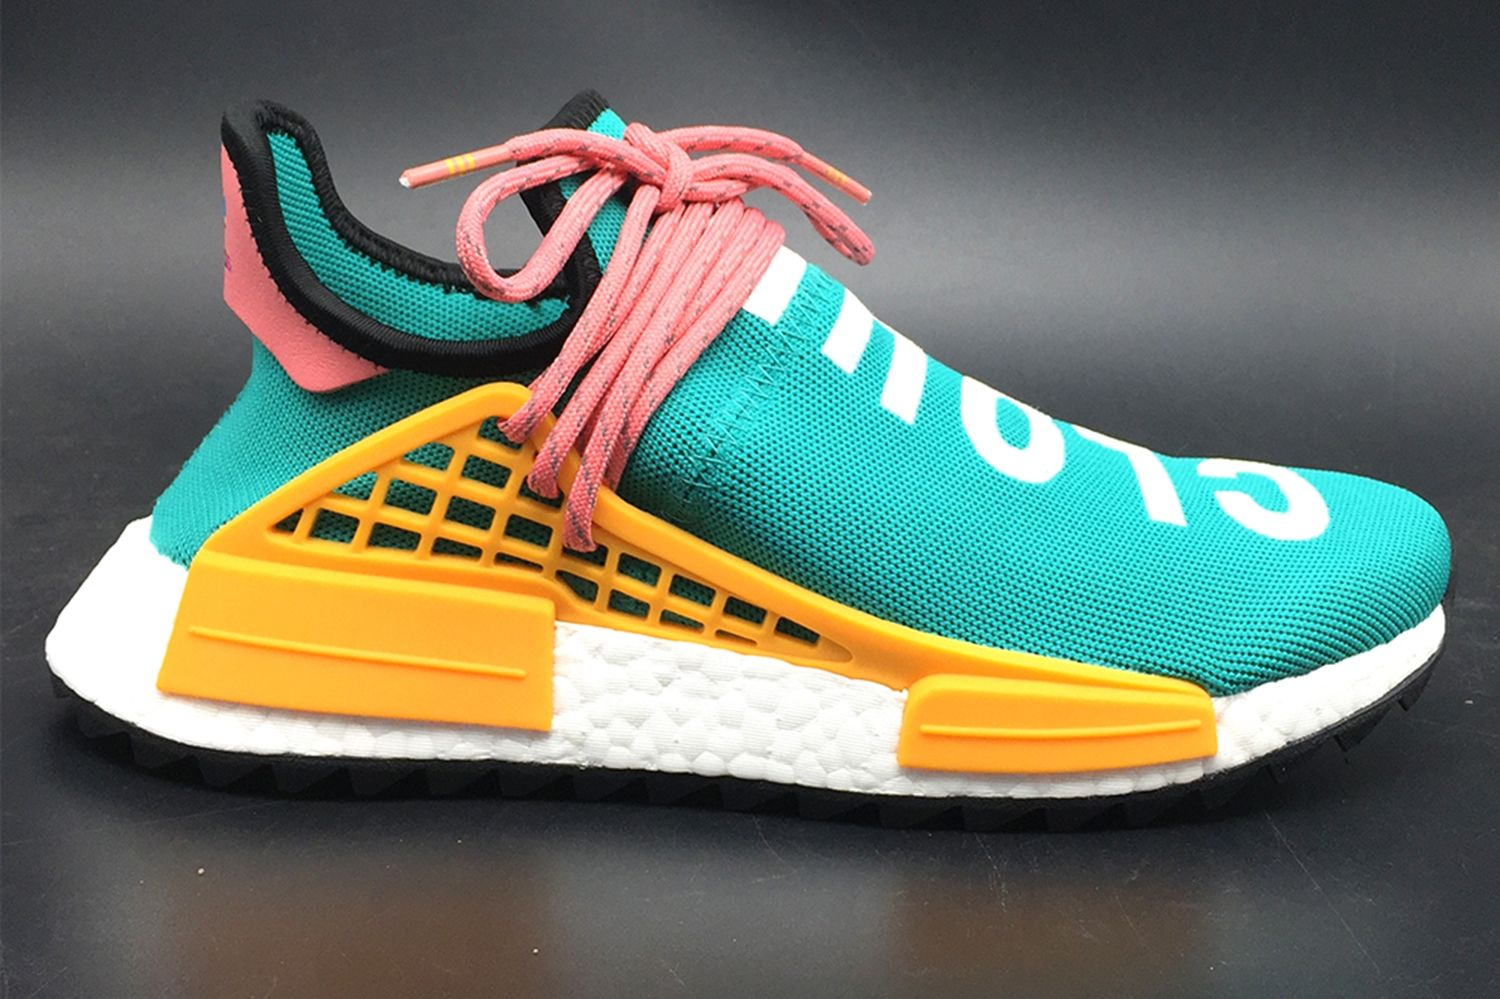 ddc8b90514d9c Pharrell Williams and Adidas Originals teamed up to build Human Race NMD Hu  with personality publicity of the upper text and originated from the NMD  fashion ...